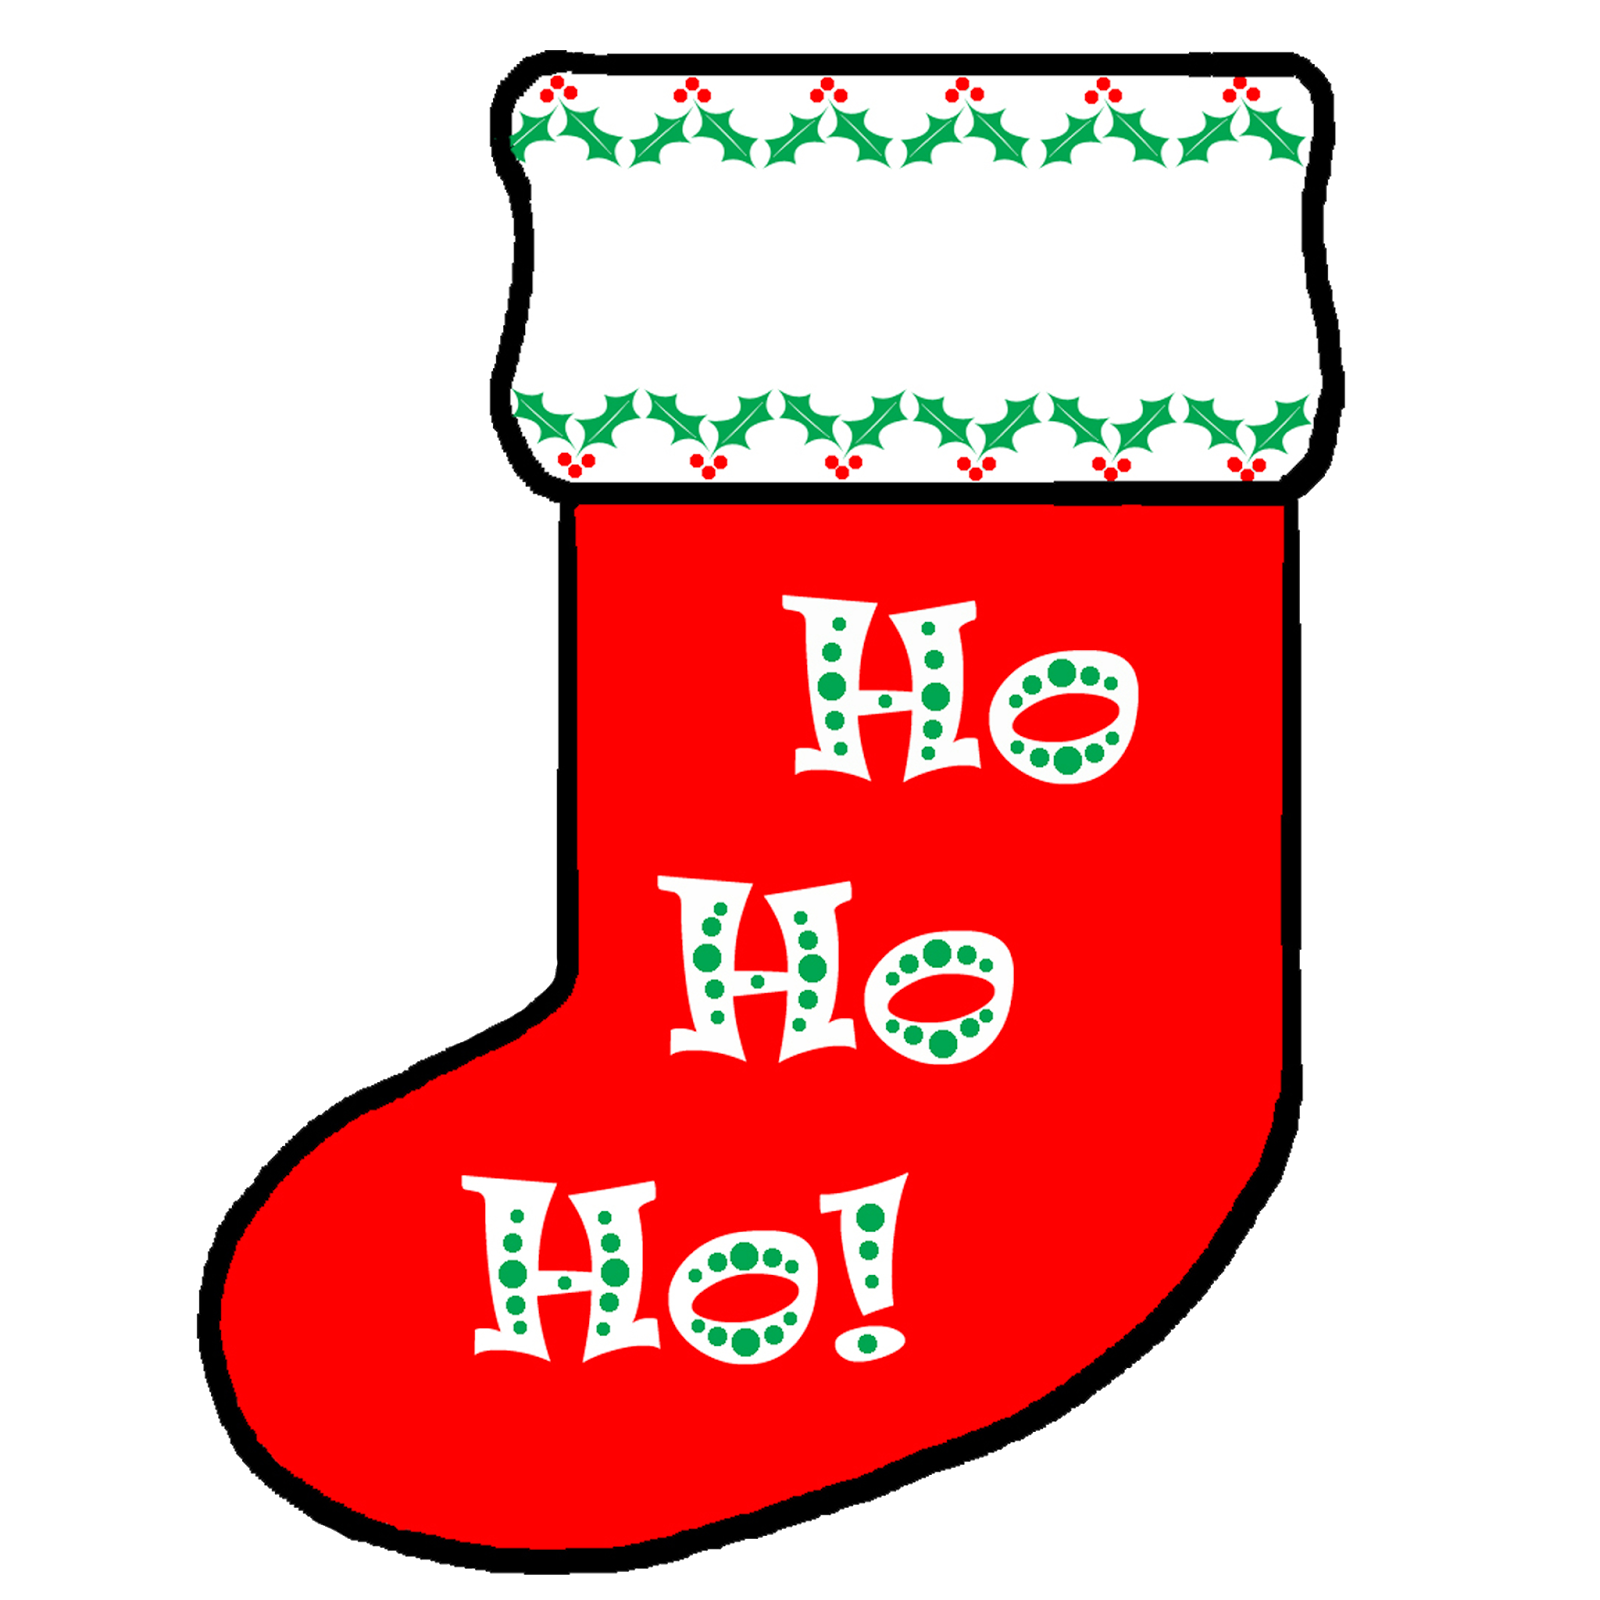 Christmas Socks Images - Cliparts.co